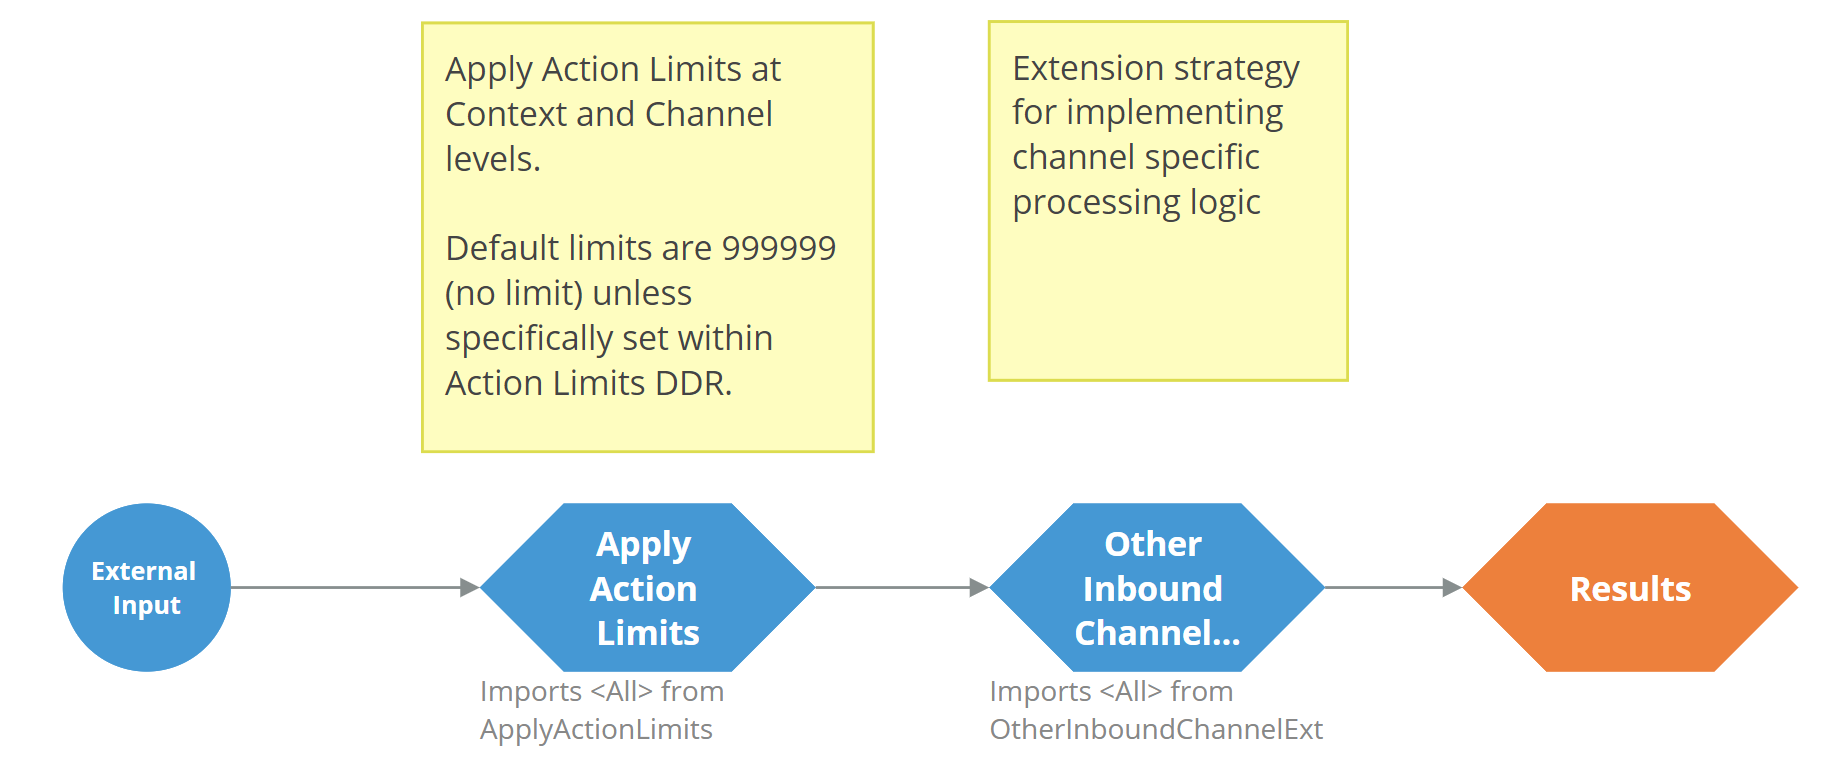 AssistedOtherChannel strategy